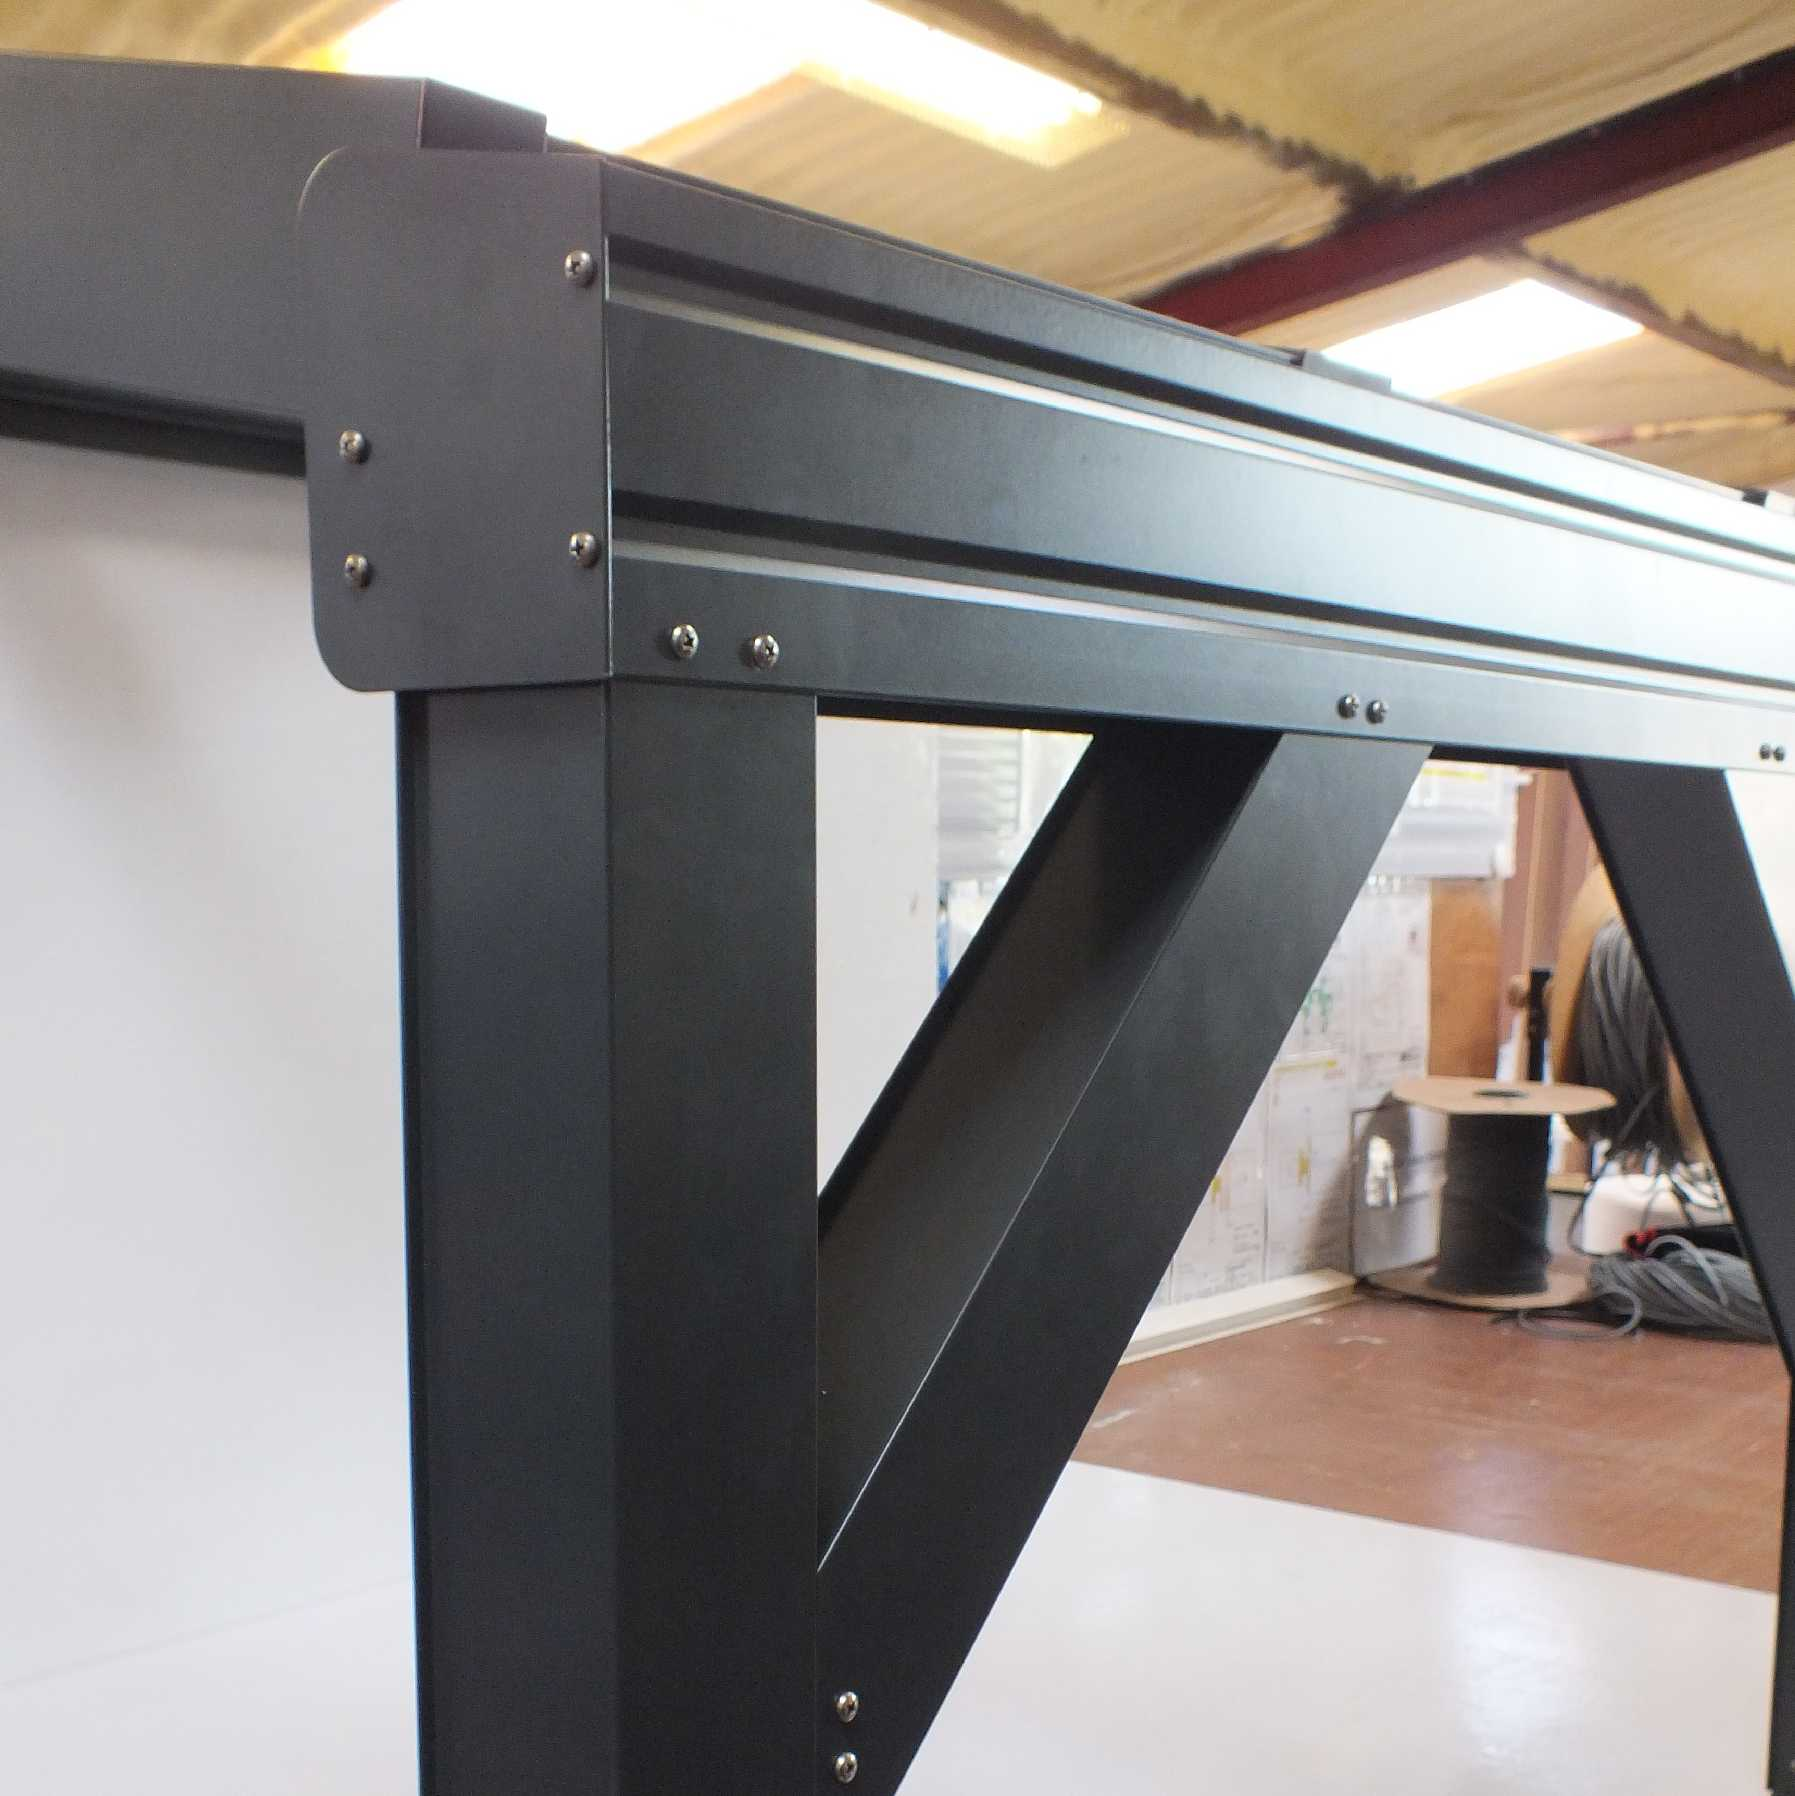 Omega Smart Lean-To Canopy, Anthracite Grey, UNGLAZED for 6mm Glazing - 2.8m (W) x 1.5m (P), (2) Supporting Posts from Omega Build